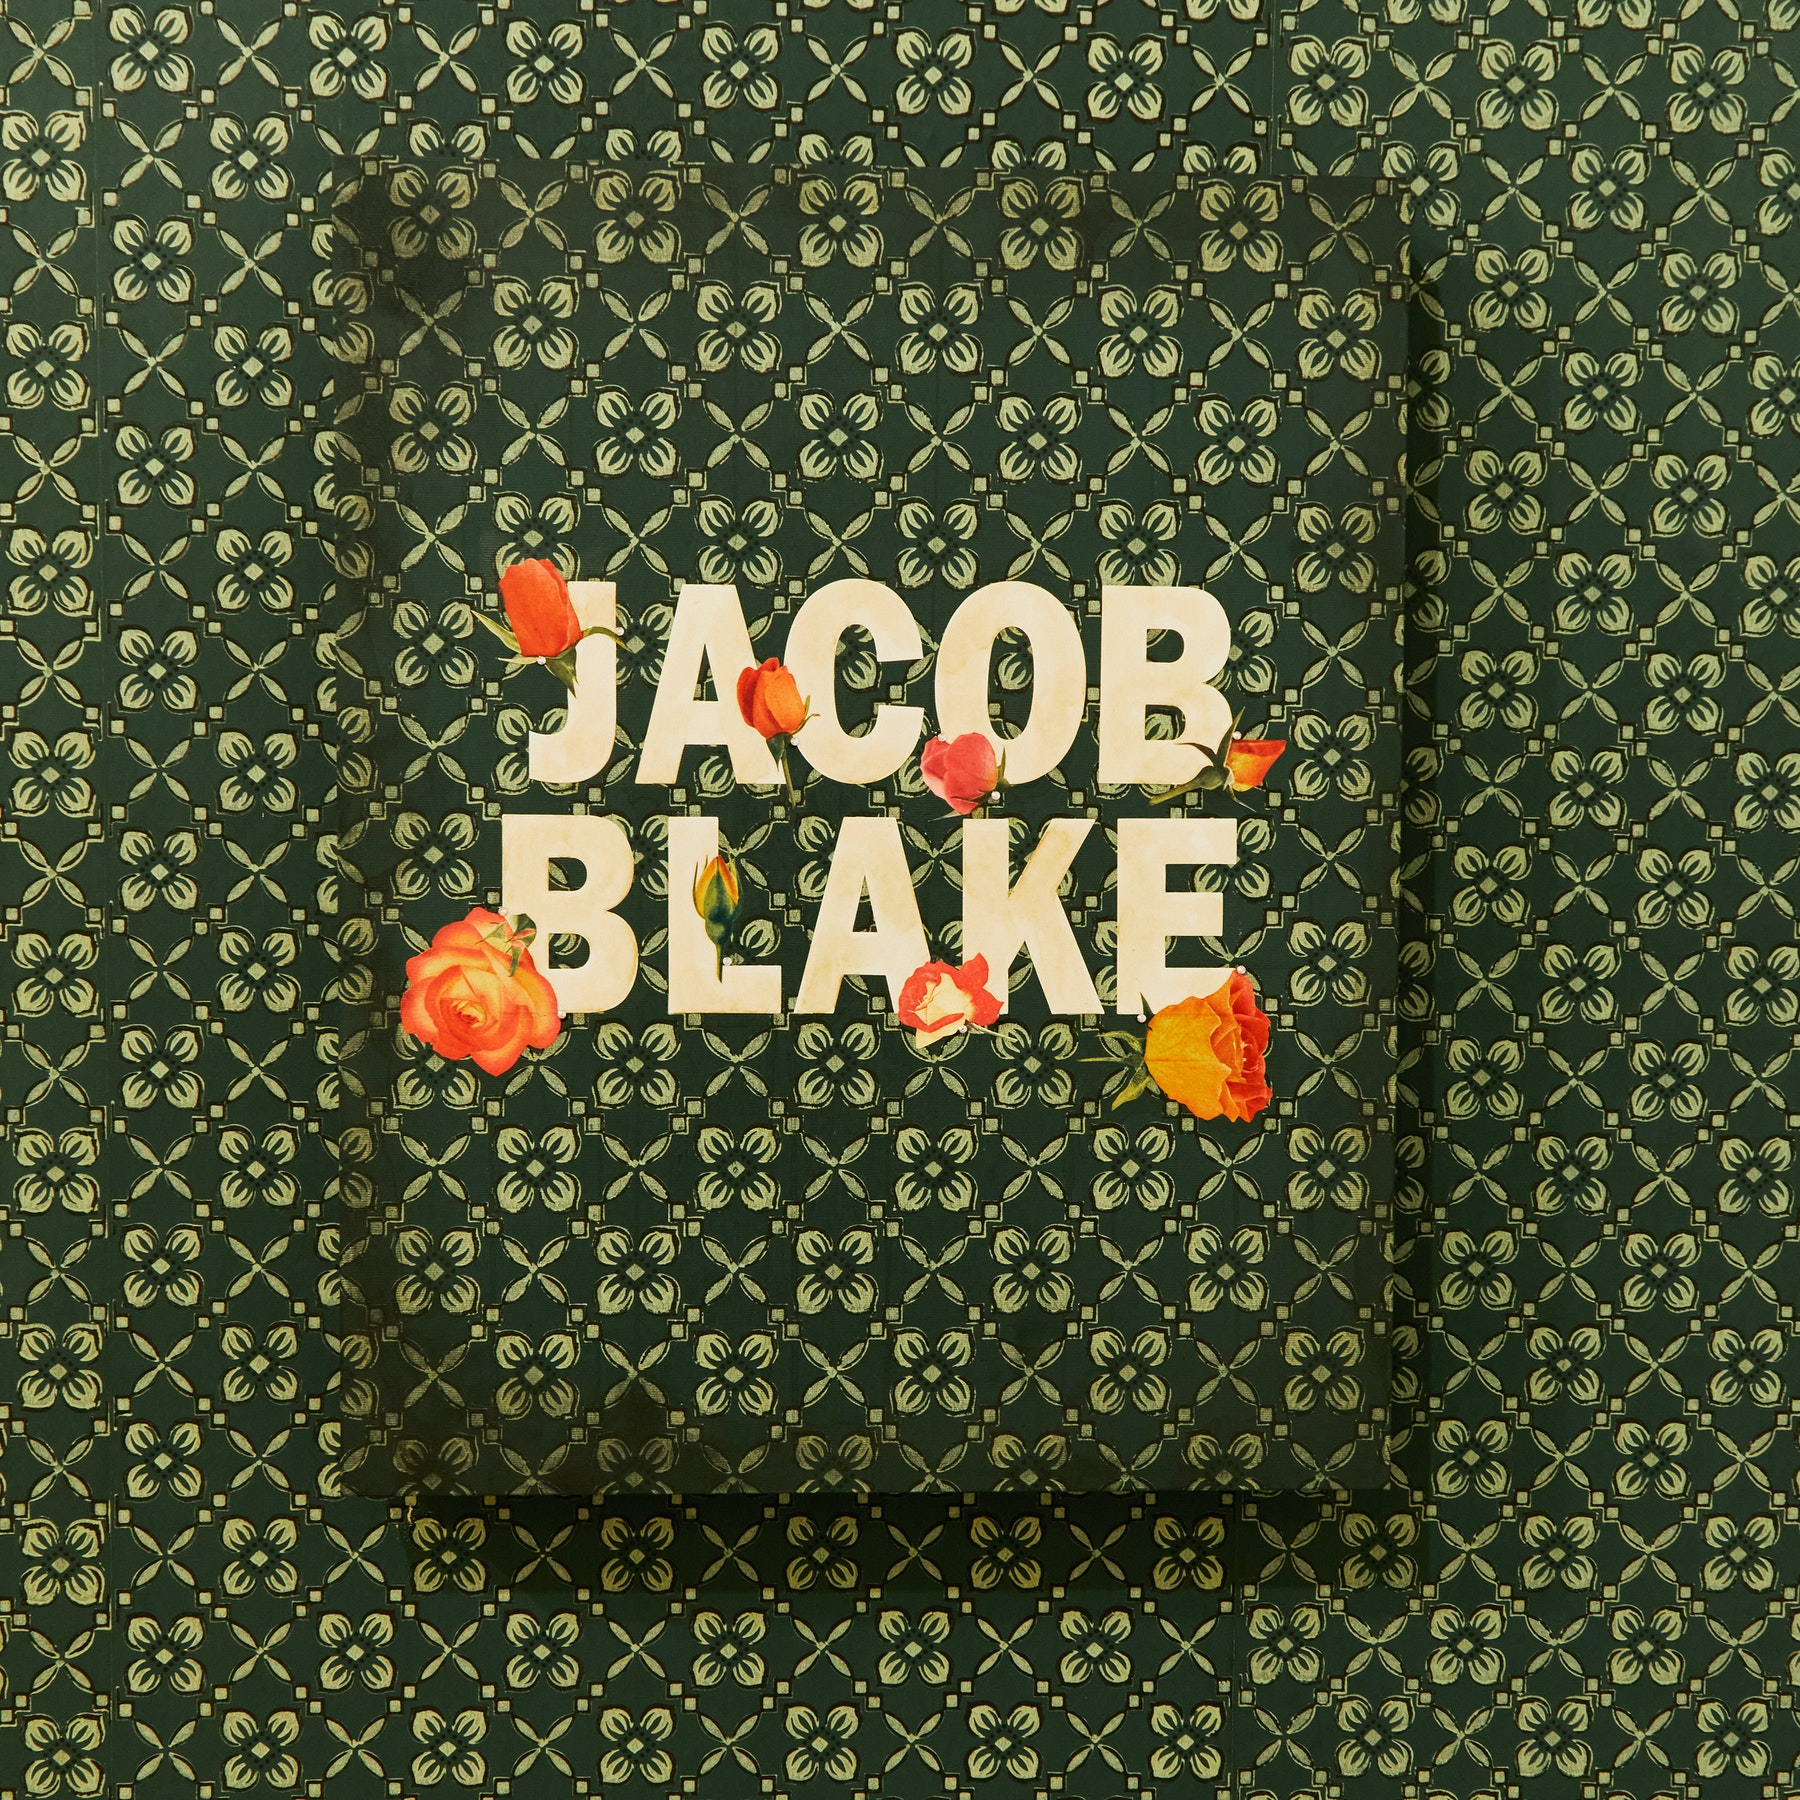 "Genevieve Gaignard ""Untitled (Jacob Blake),"" 2020 Mixed media on panel 20 x 16 x 1.5"" [HxWxD] (50.8 x 40.64 x 3.81 cm) Inventory #GEN325 Courtesy of the artist and Vielmetter Los Angeles Photo credit: Megan Haley"